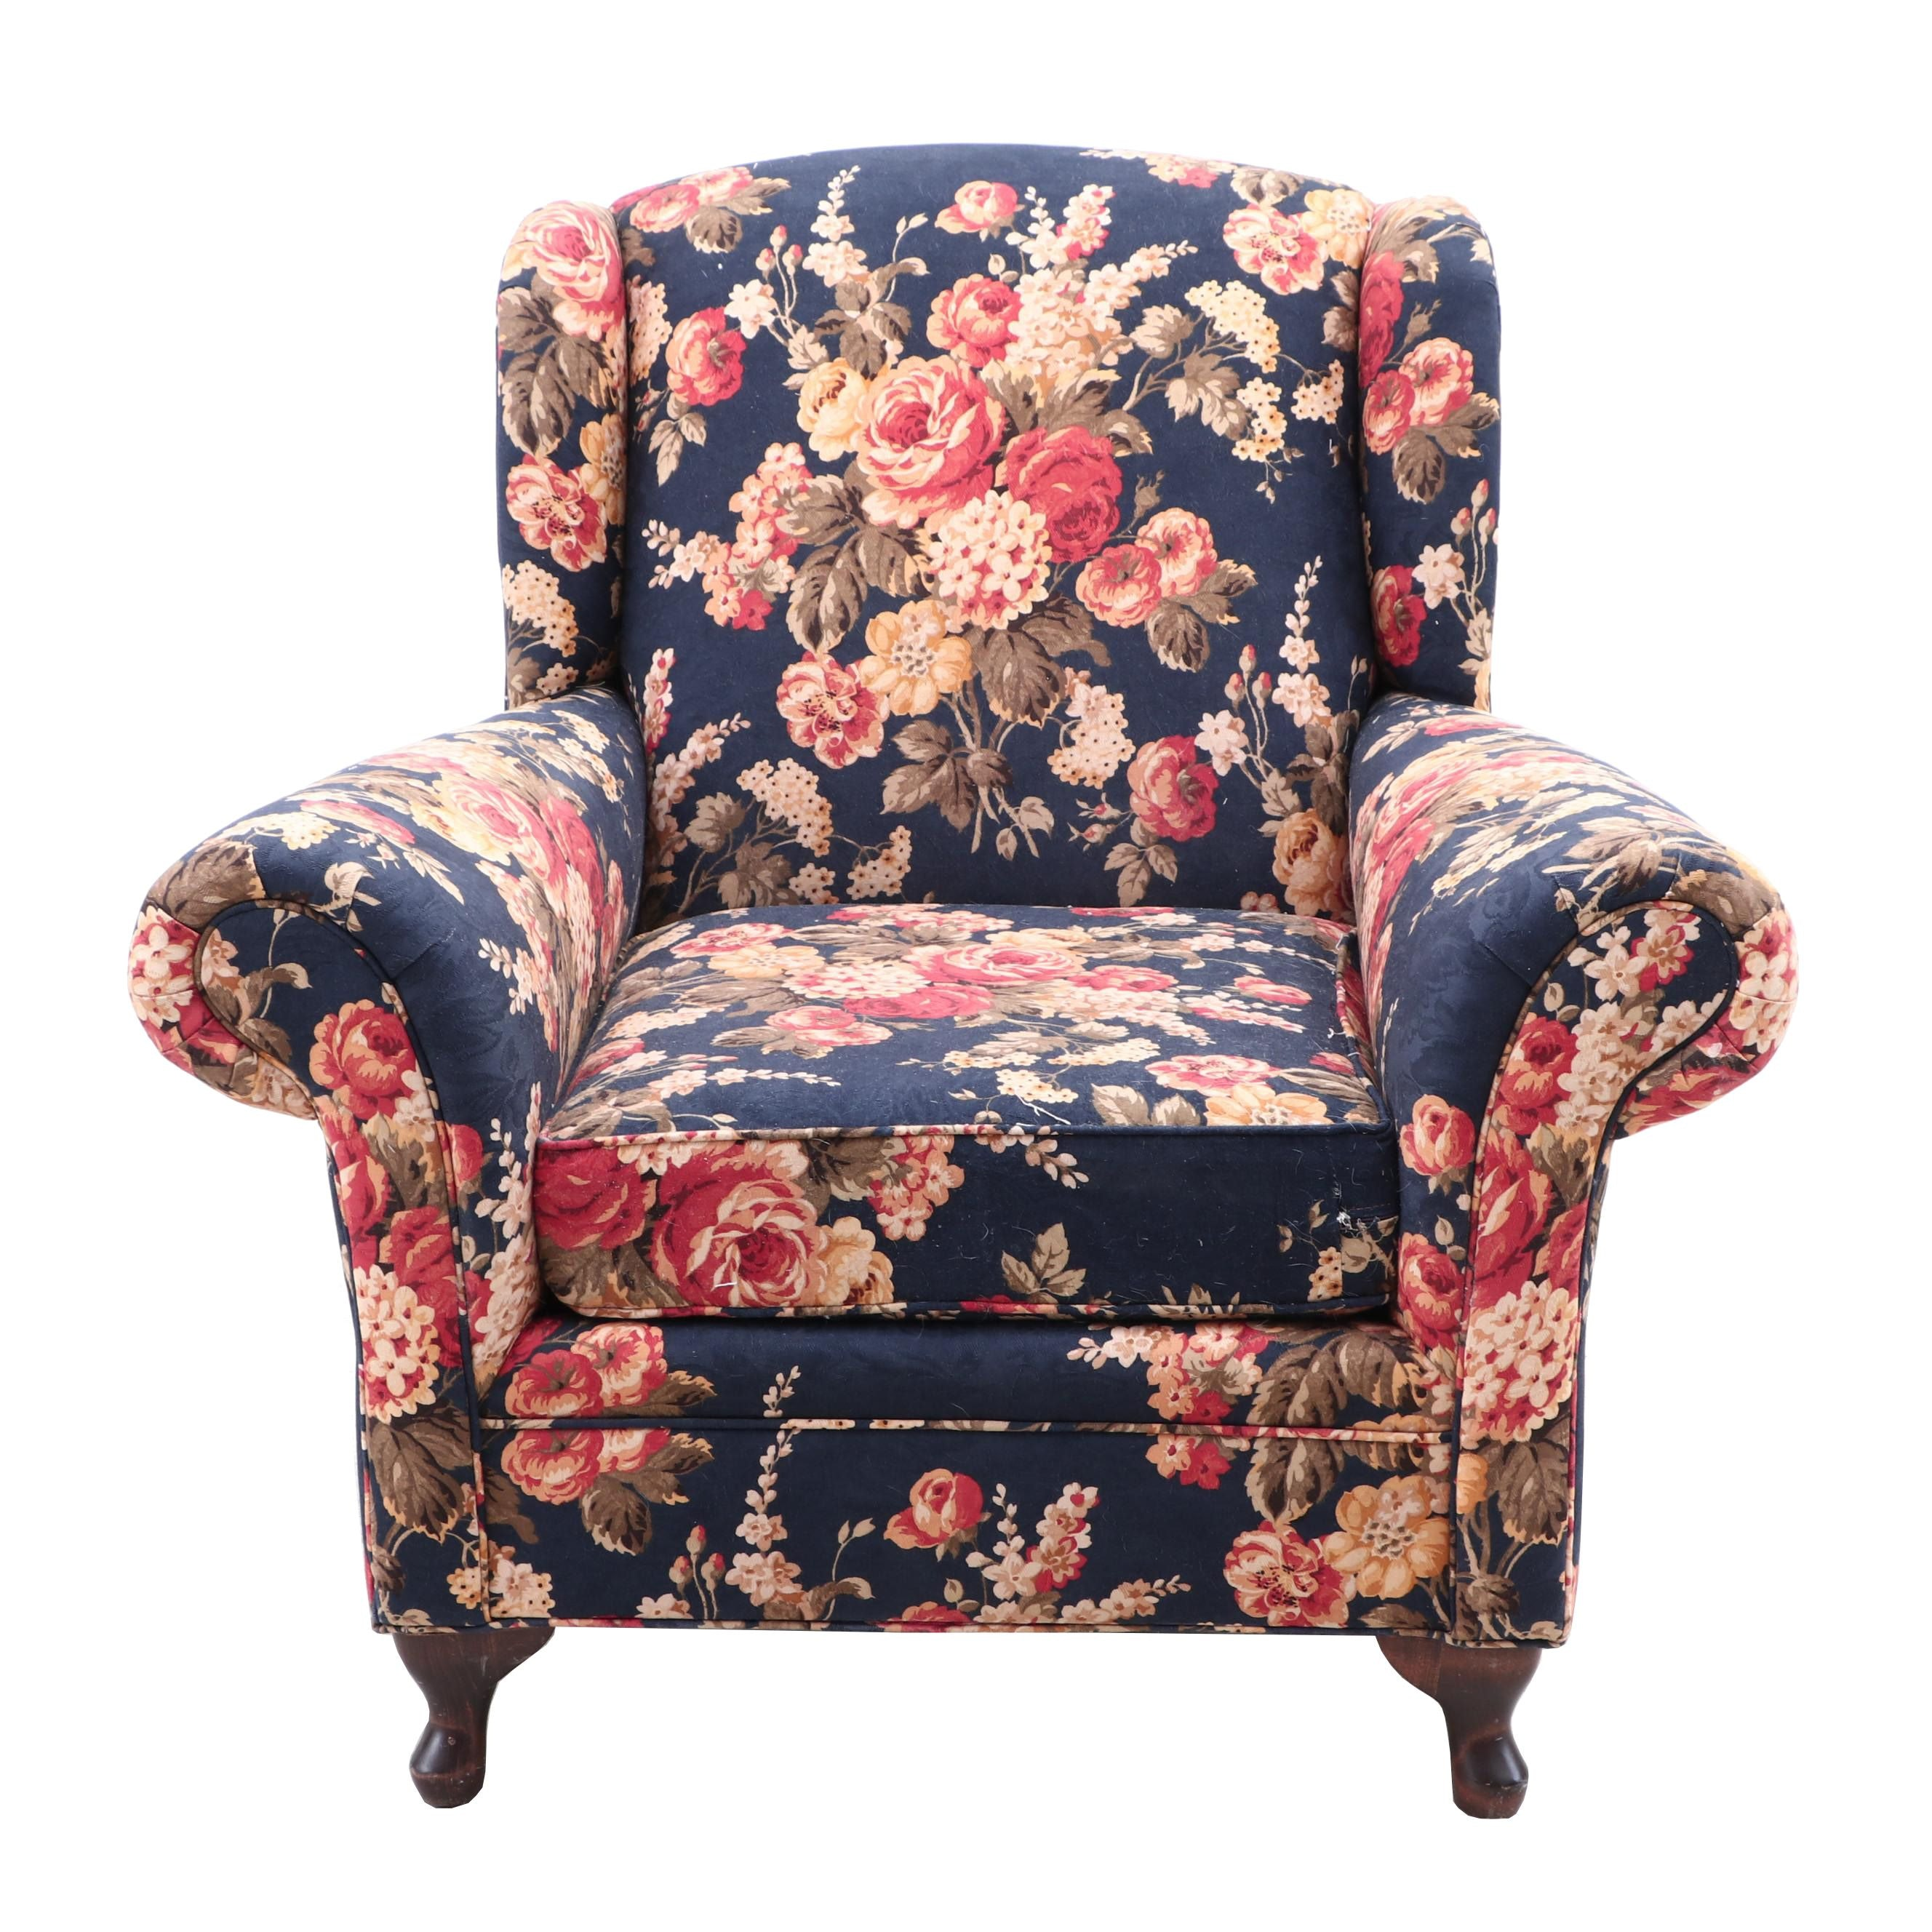 Contemporary Wingback Chair in Floral Linen Upholstery by King Hickory